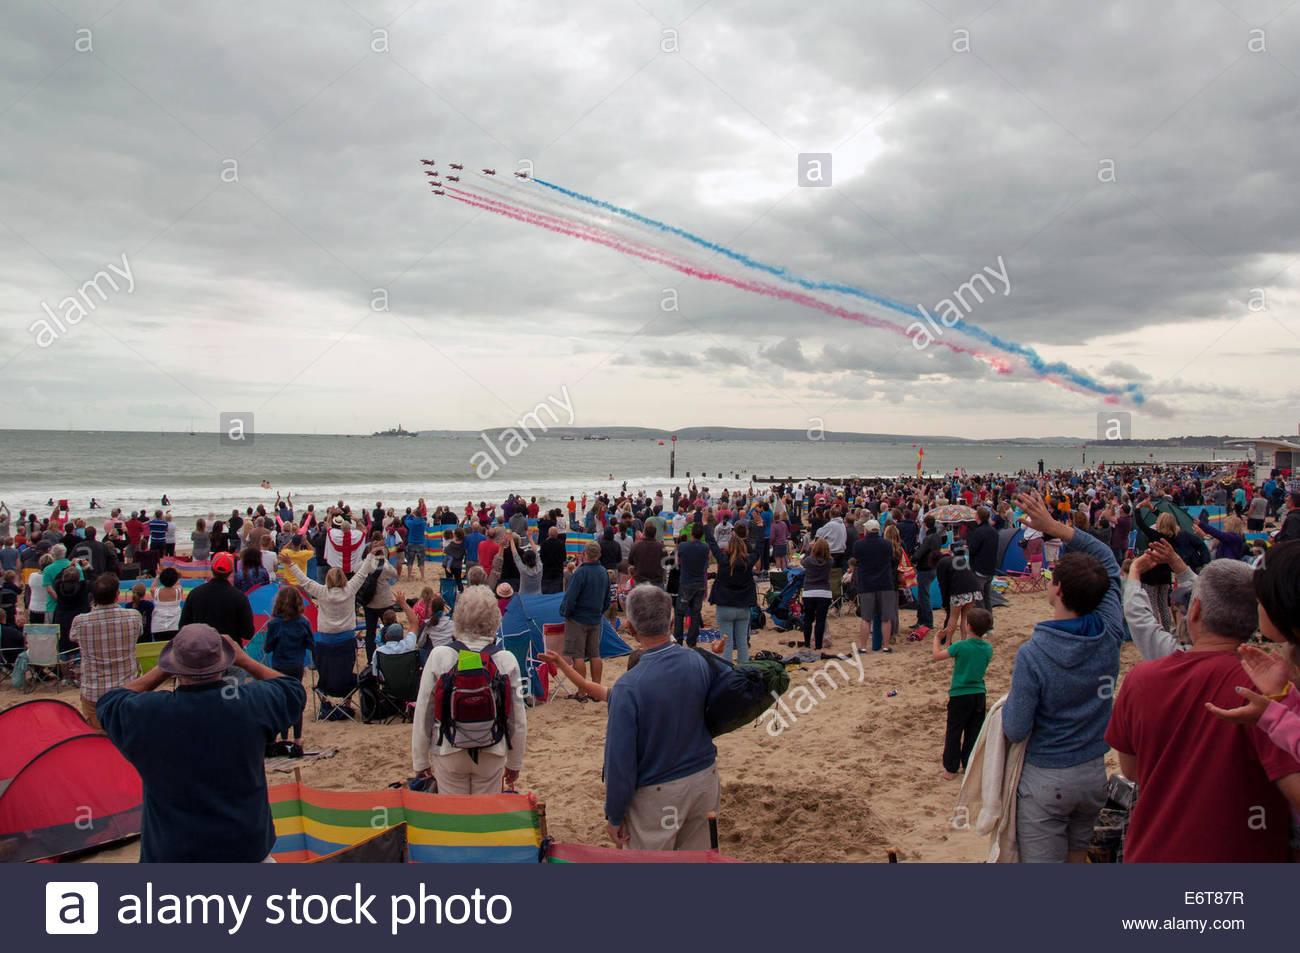 Bournemouth, UK, 30th August 2014: The crowd cheers and waves as the RAF Red Arrows team of eight planes perform - Stock Image